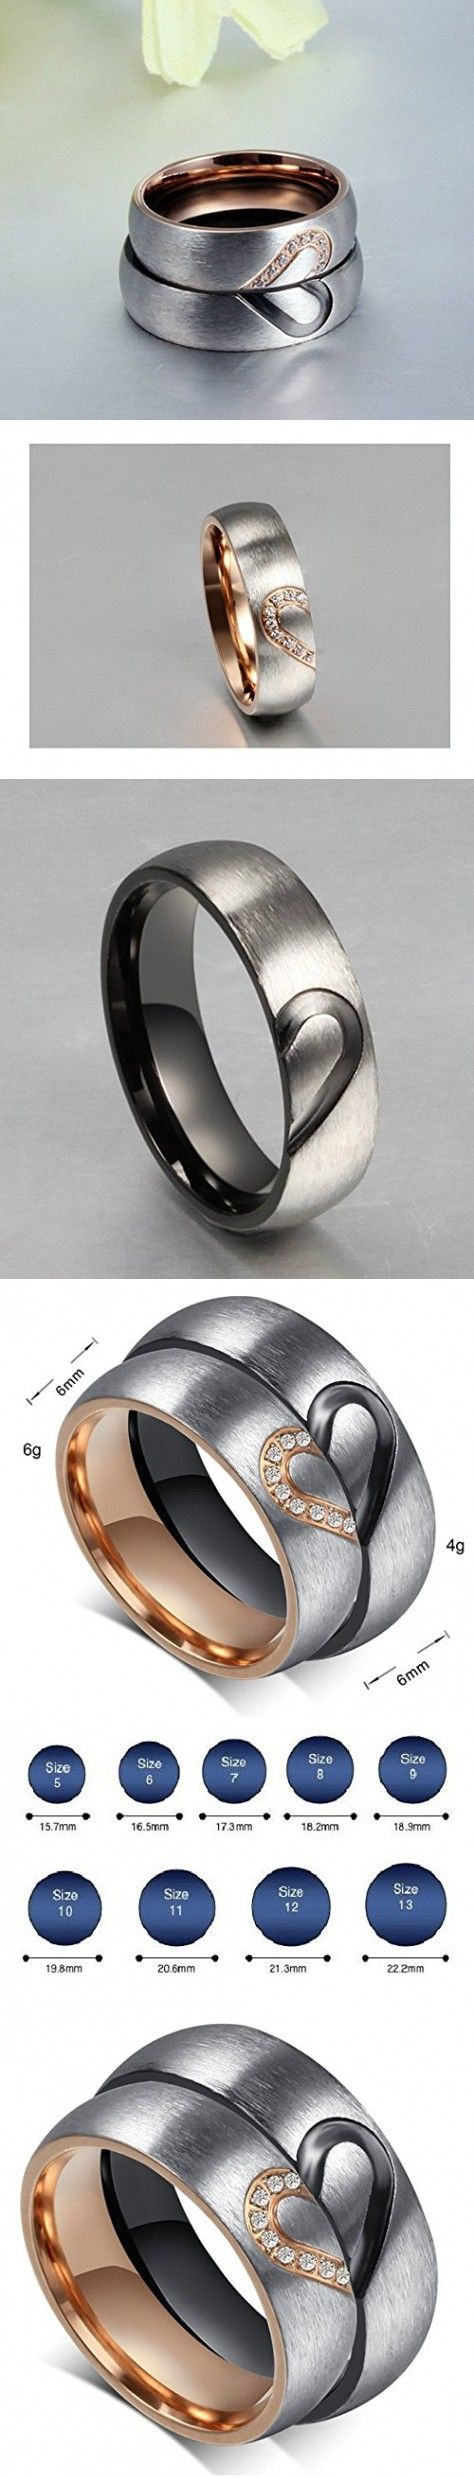 "Aegean Jewelry Titanium Couple Fashion Wedding Band Ring ""We Are a Perfect Match"" Love Style with a Gift Box and a FREE Small Gift (MEN'S, 10)"